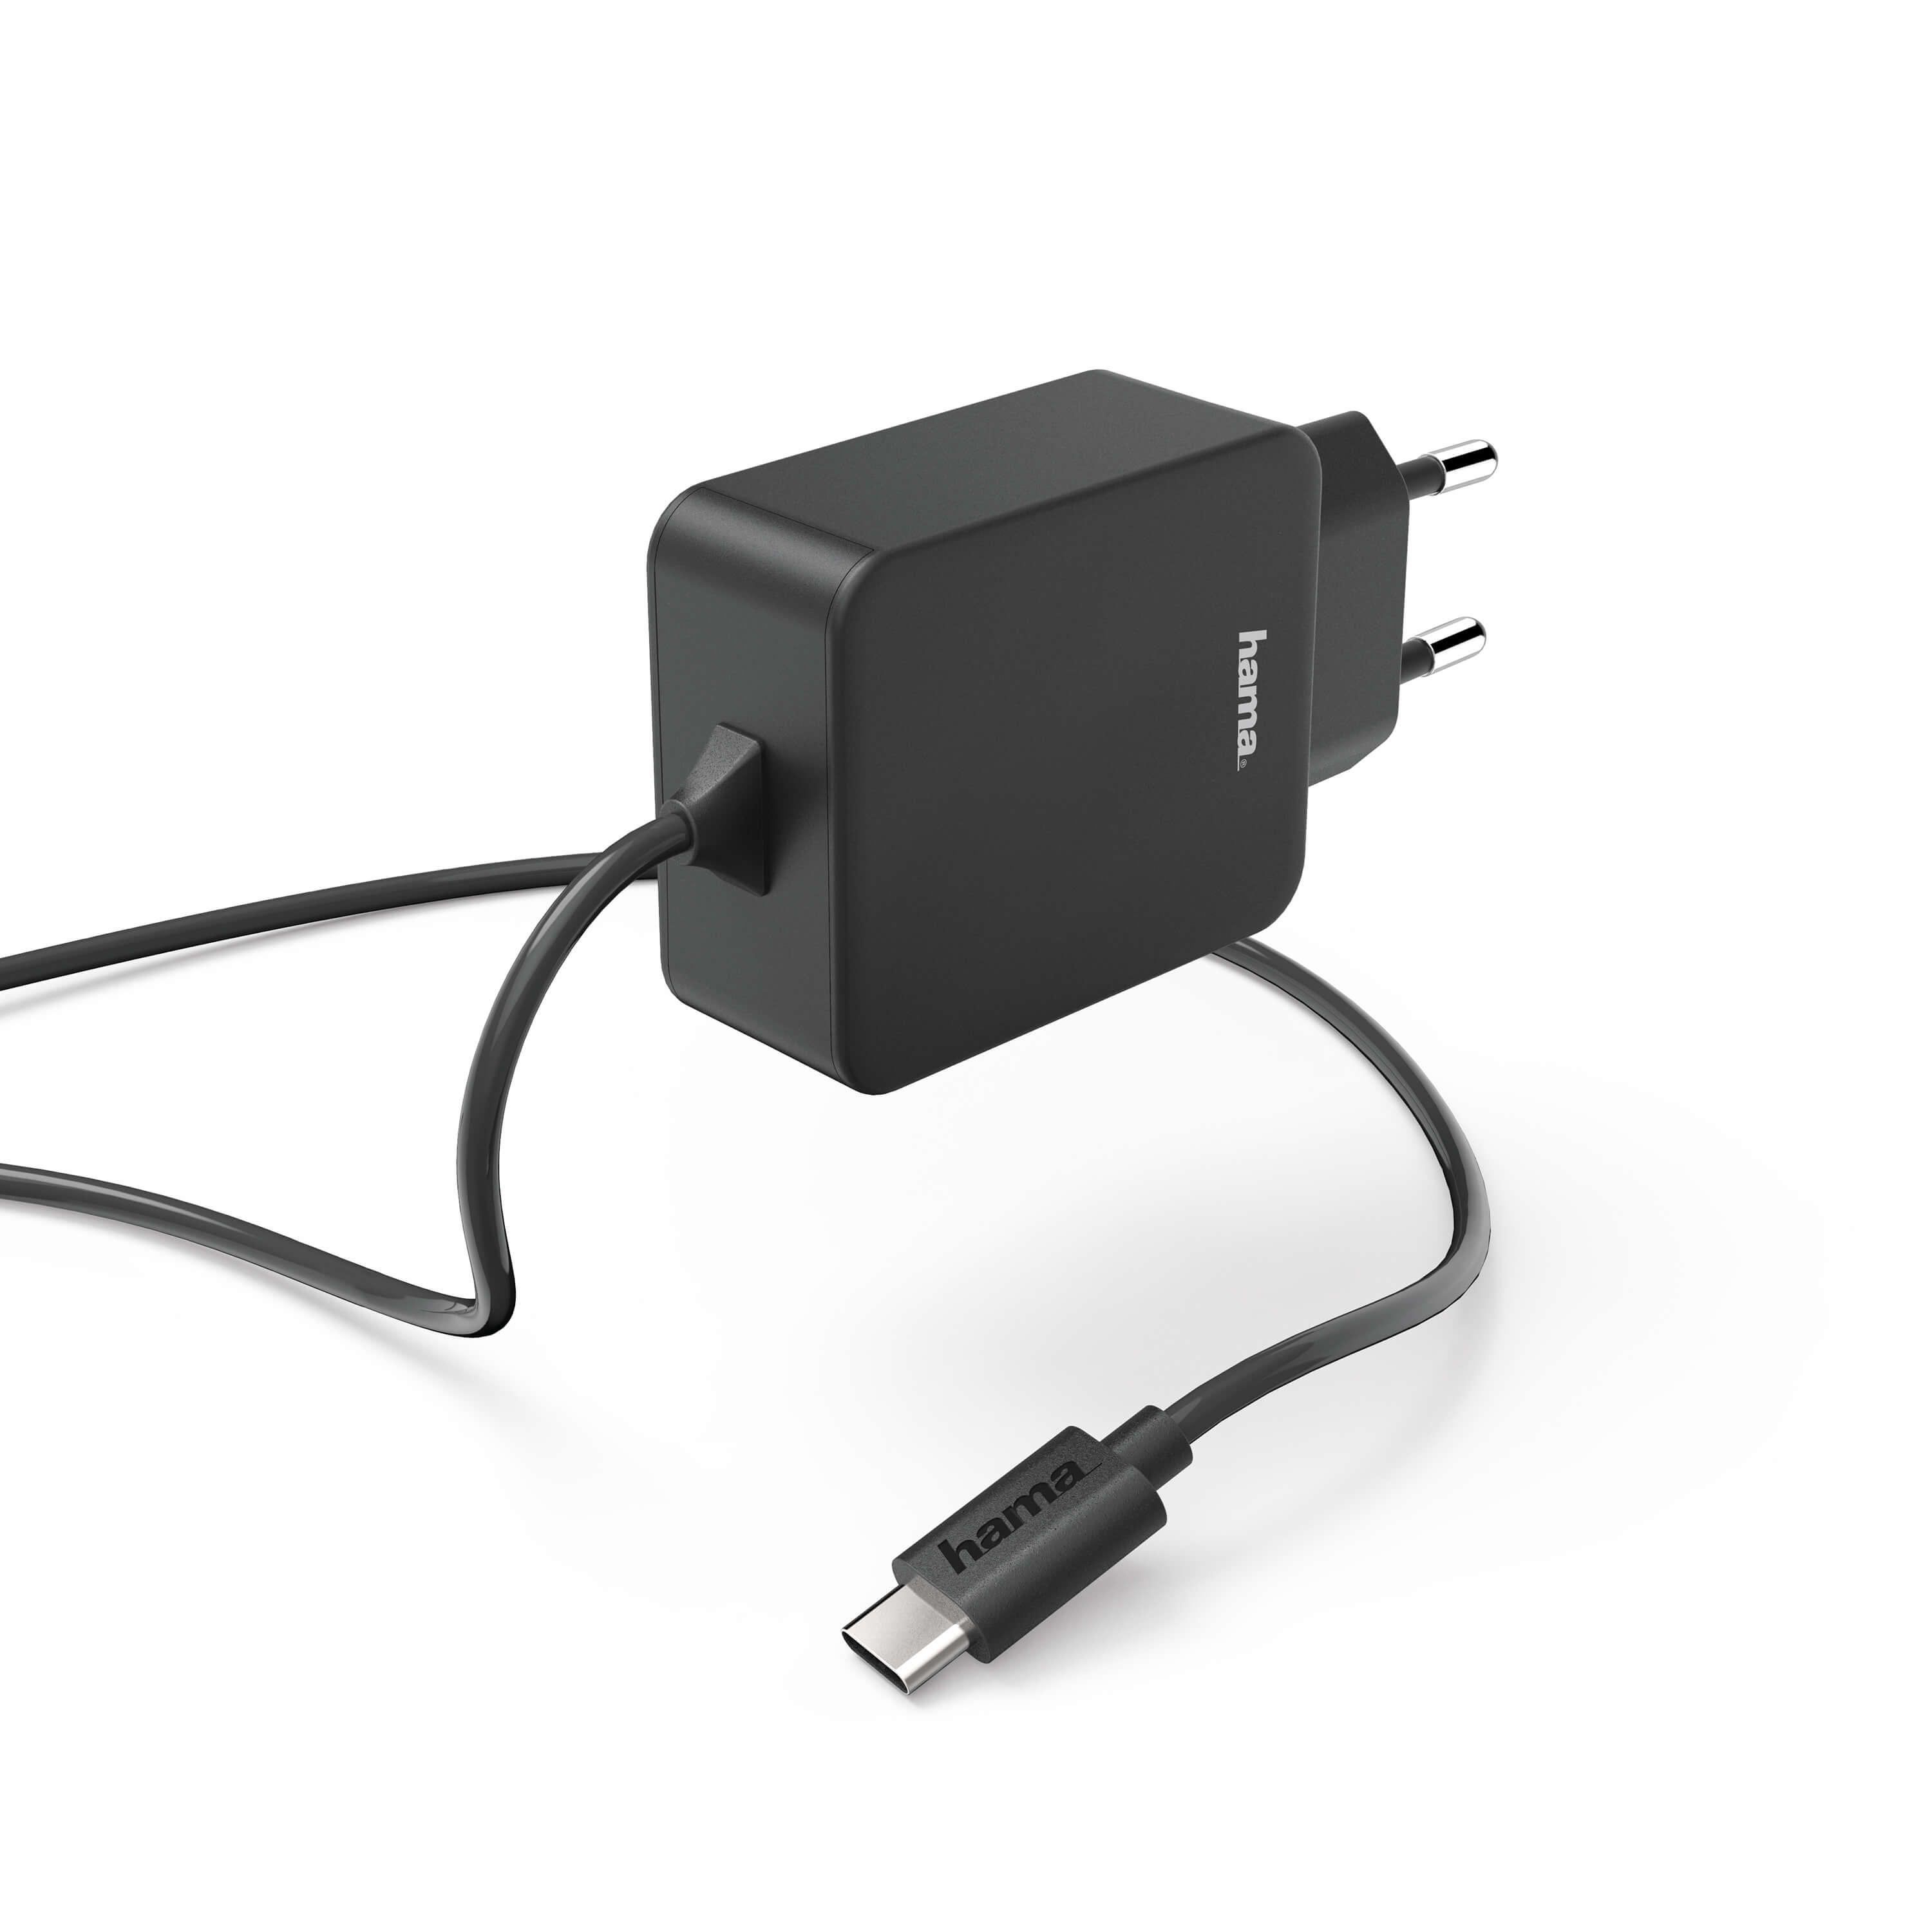 HAMA Charger 220V USB C 3A Black mounted cable